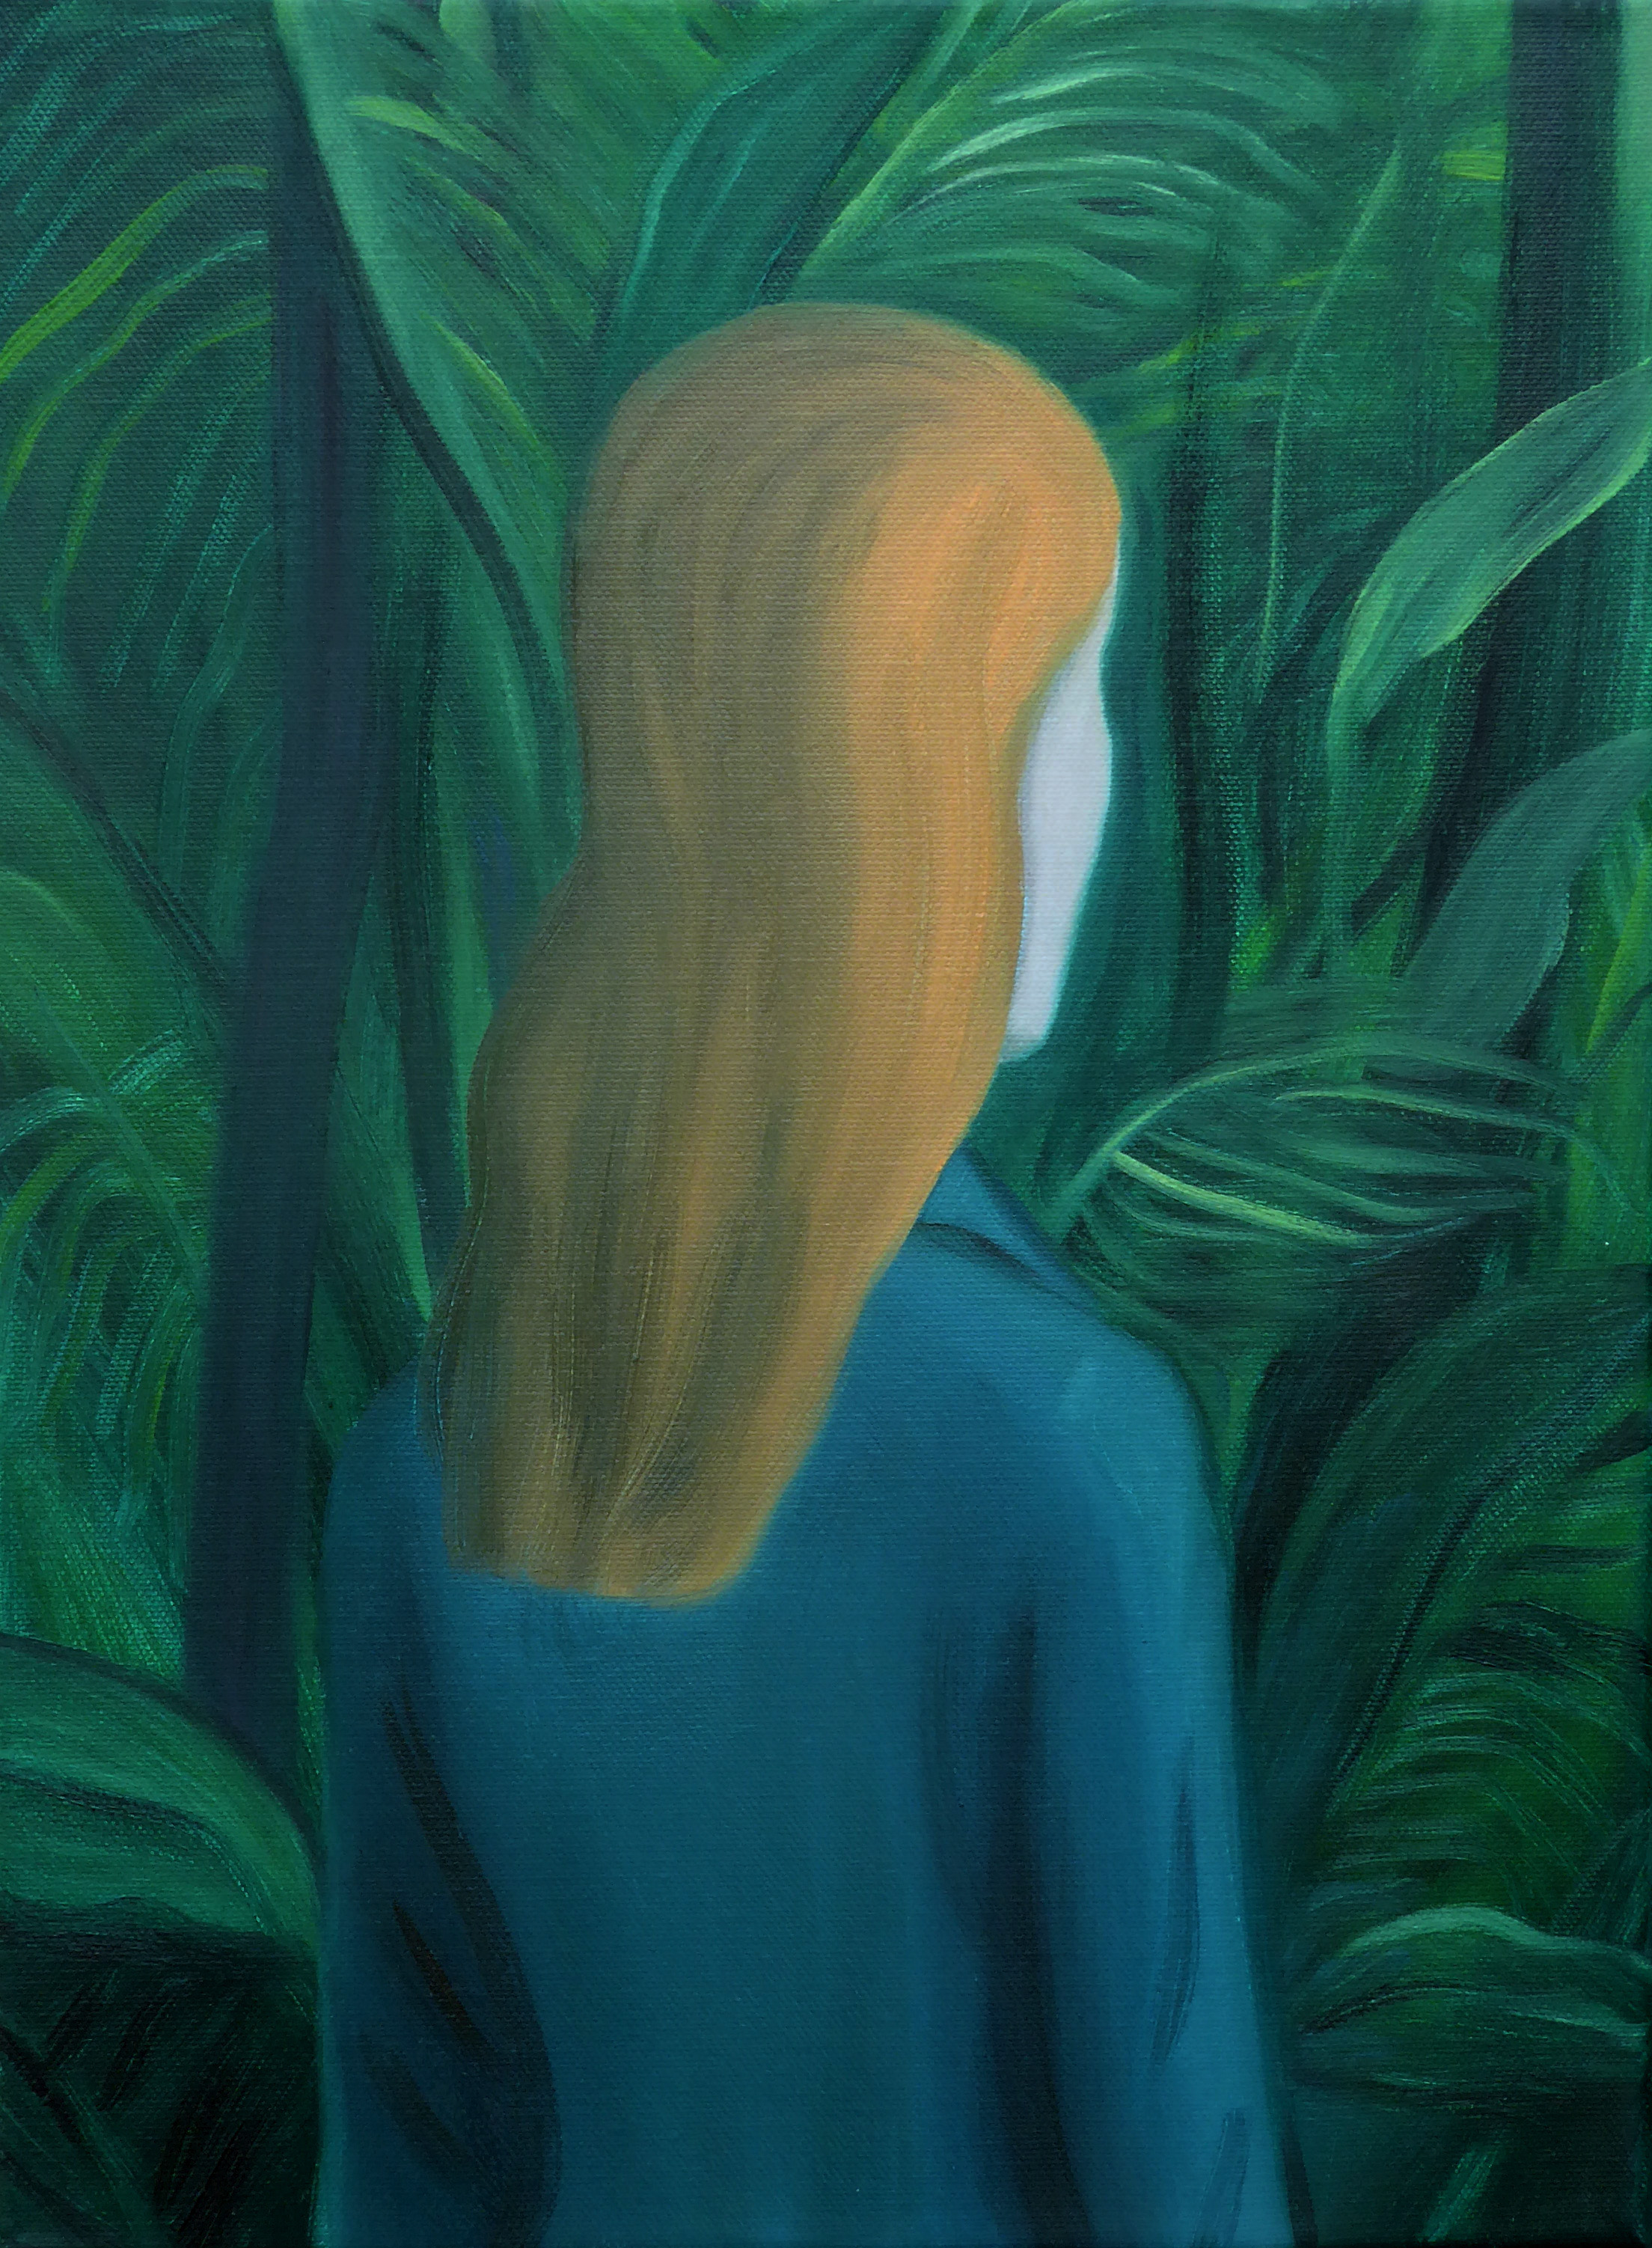 Lost in the Jungle - Oil on canvas